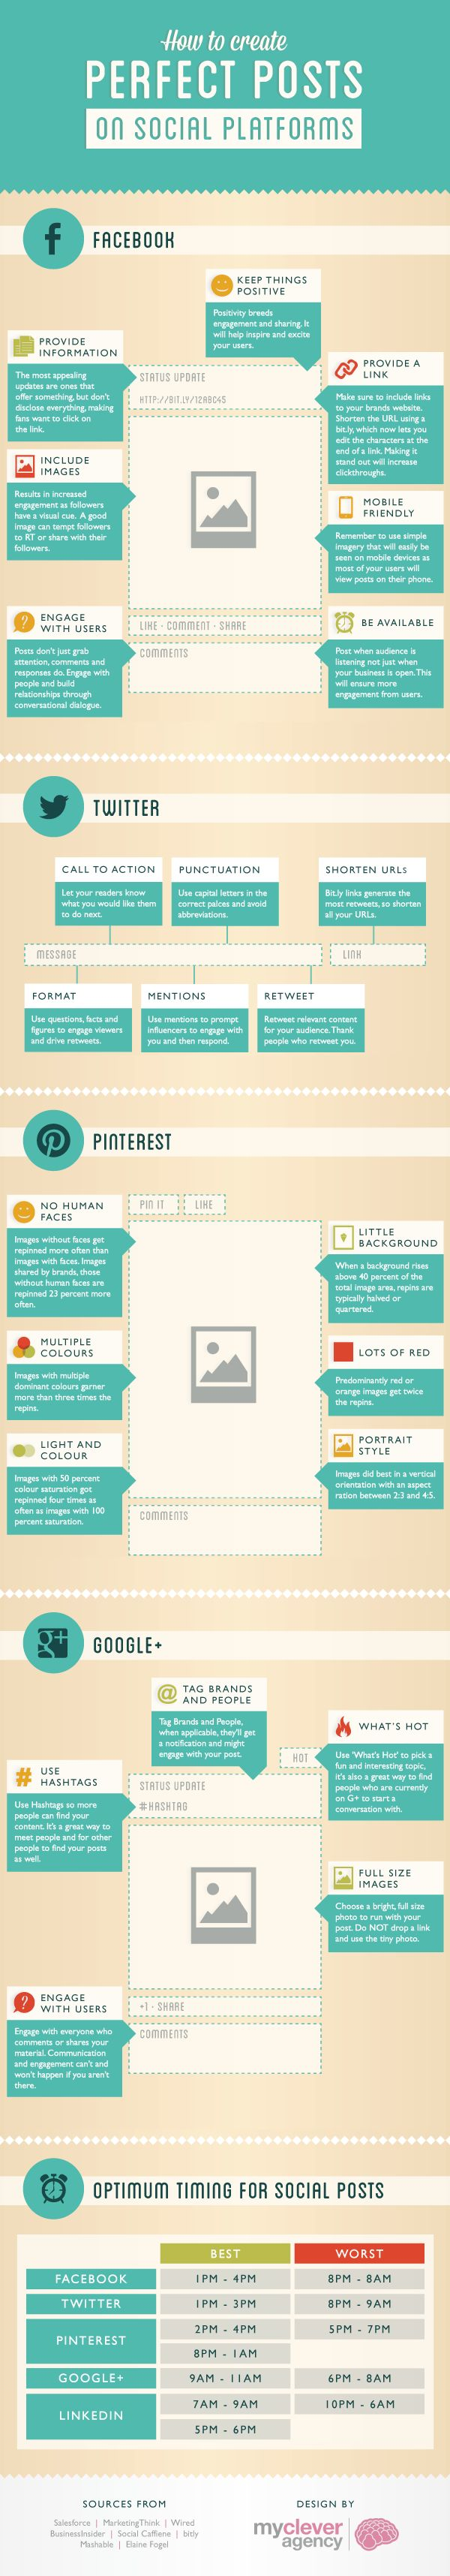 http://ajiboye.digimkts.com Branding, design, web, CRM, more. Love it. Worth taking a minute to review. Perfect Post Perfect Post Types for Facebook, Twitter, Google Plus & Pinterest | Infographic